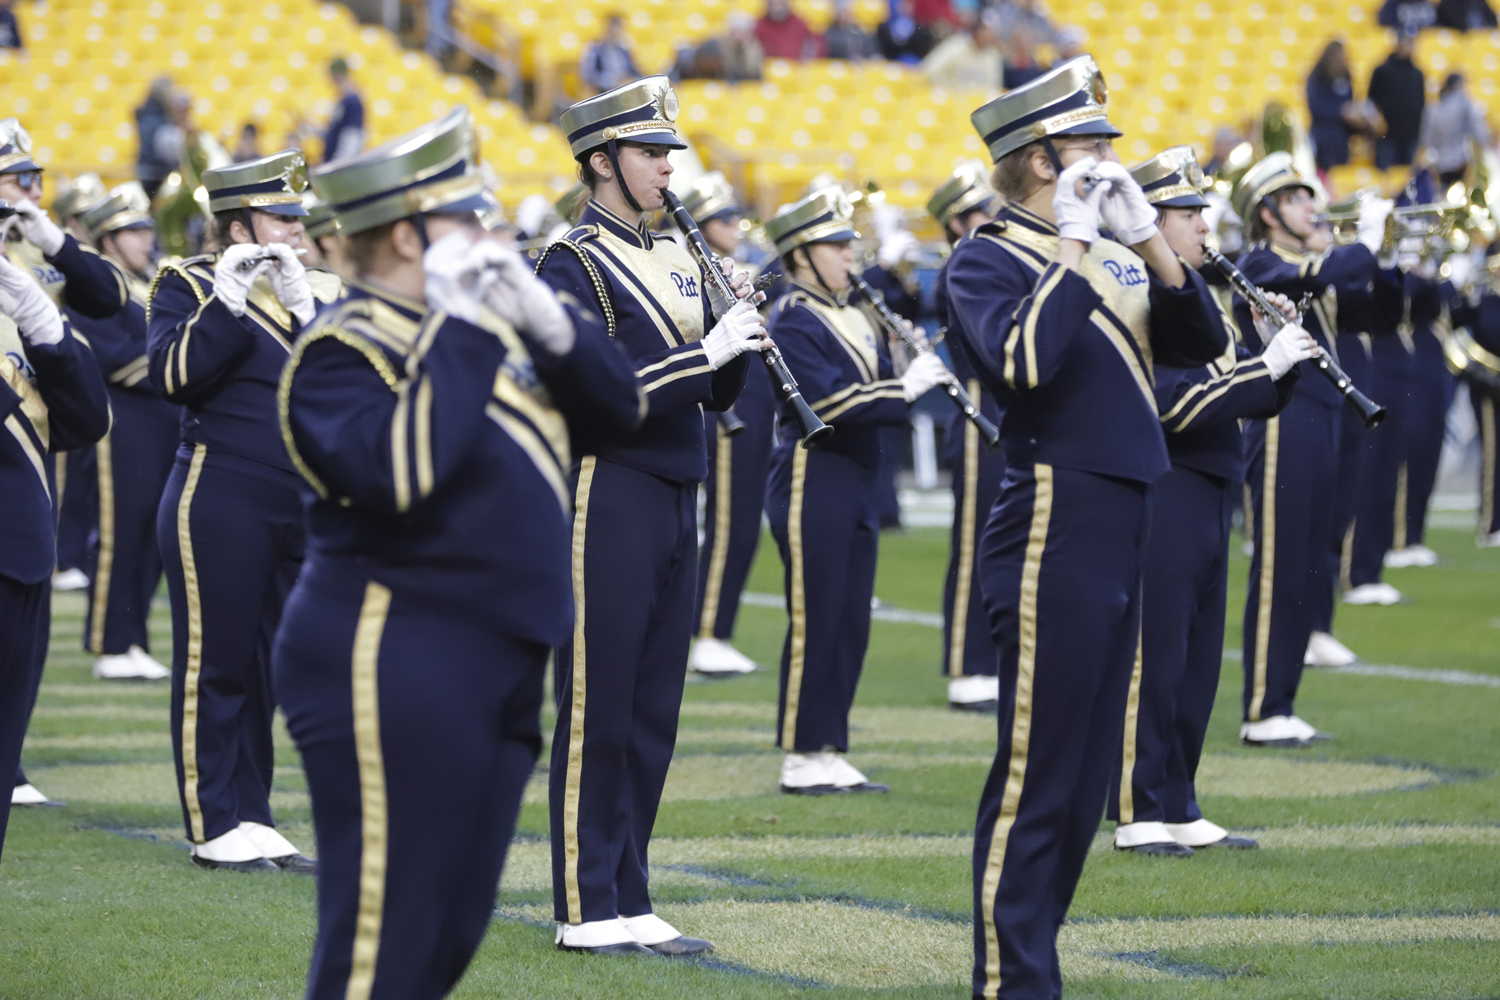 The woodwind section of Pitt's marching band performs at Heinz Field during a break in the Panthers' game against Duke on Oct. 27.